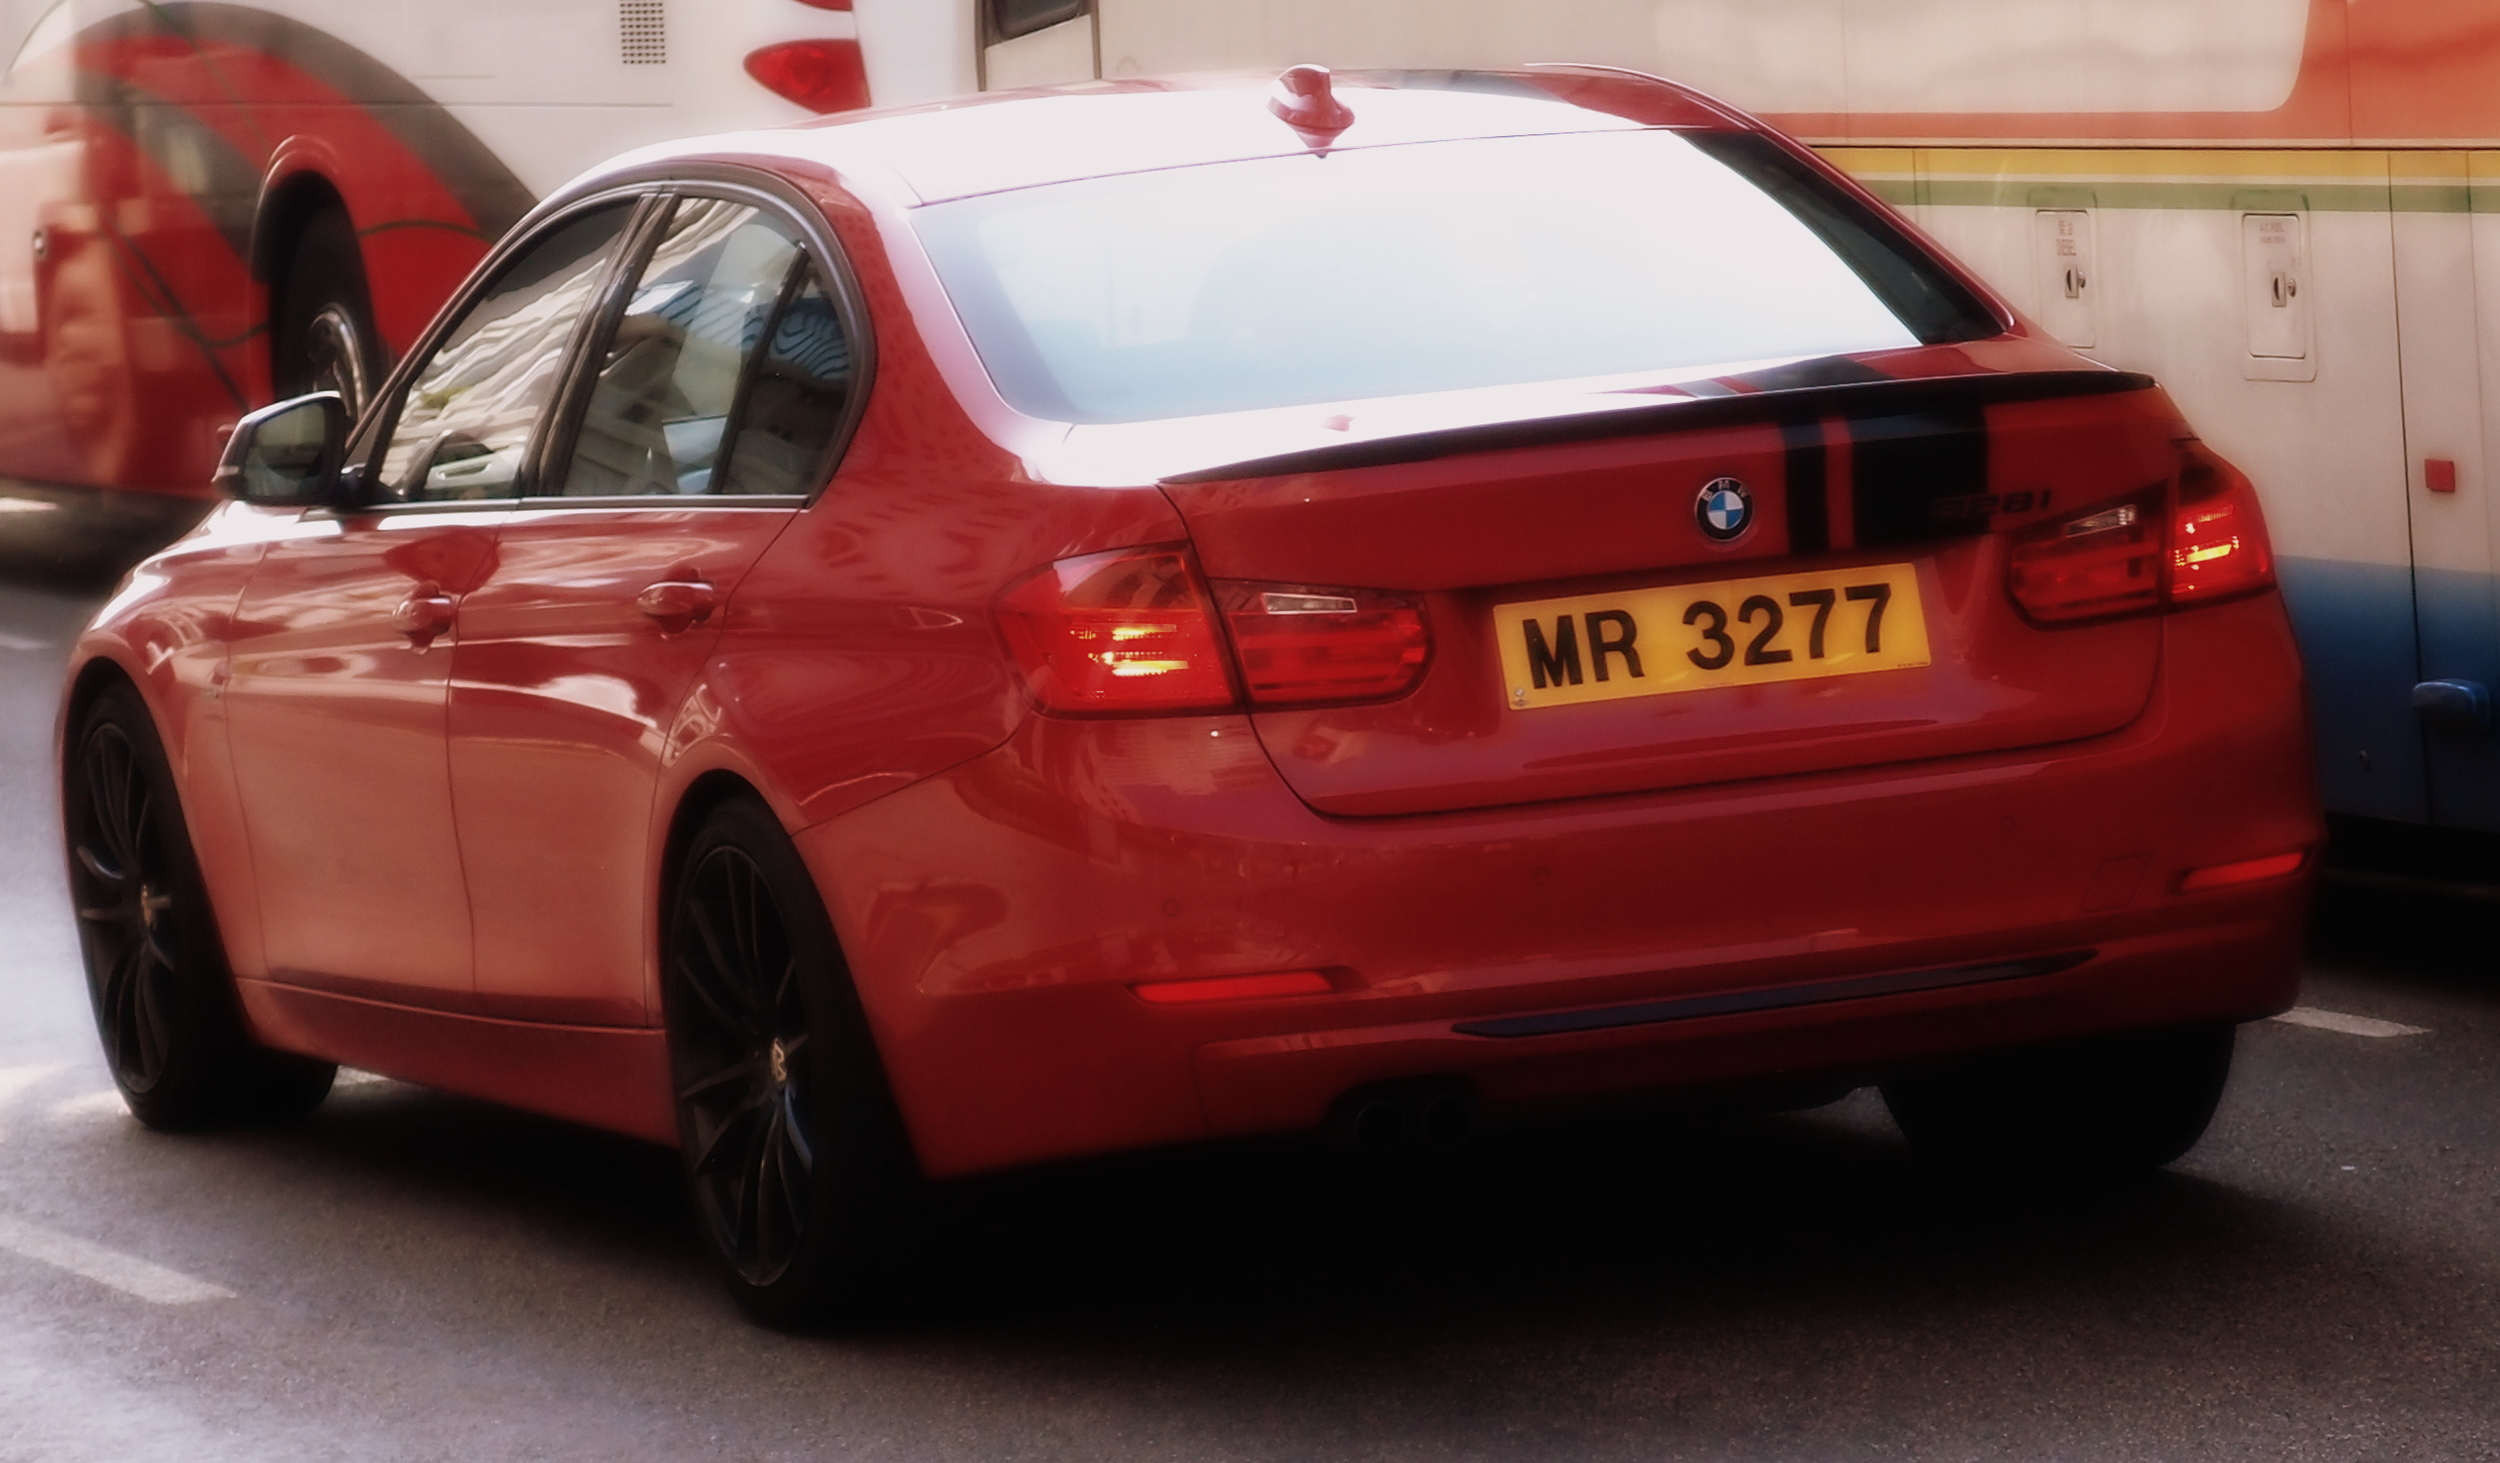 A red BMW